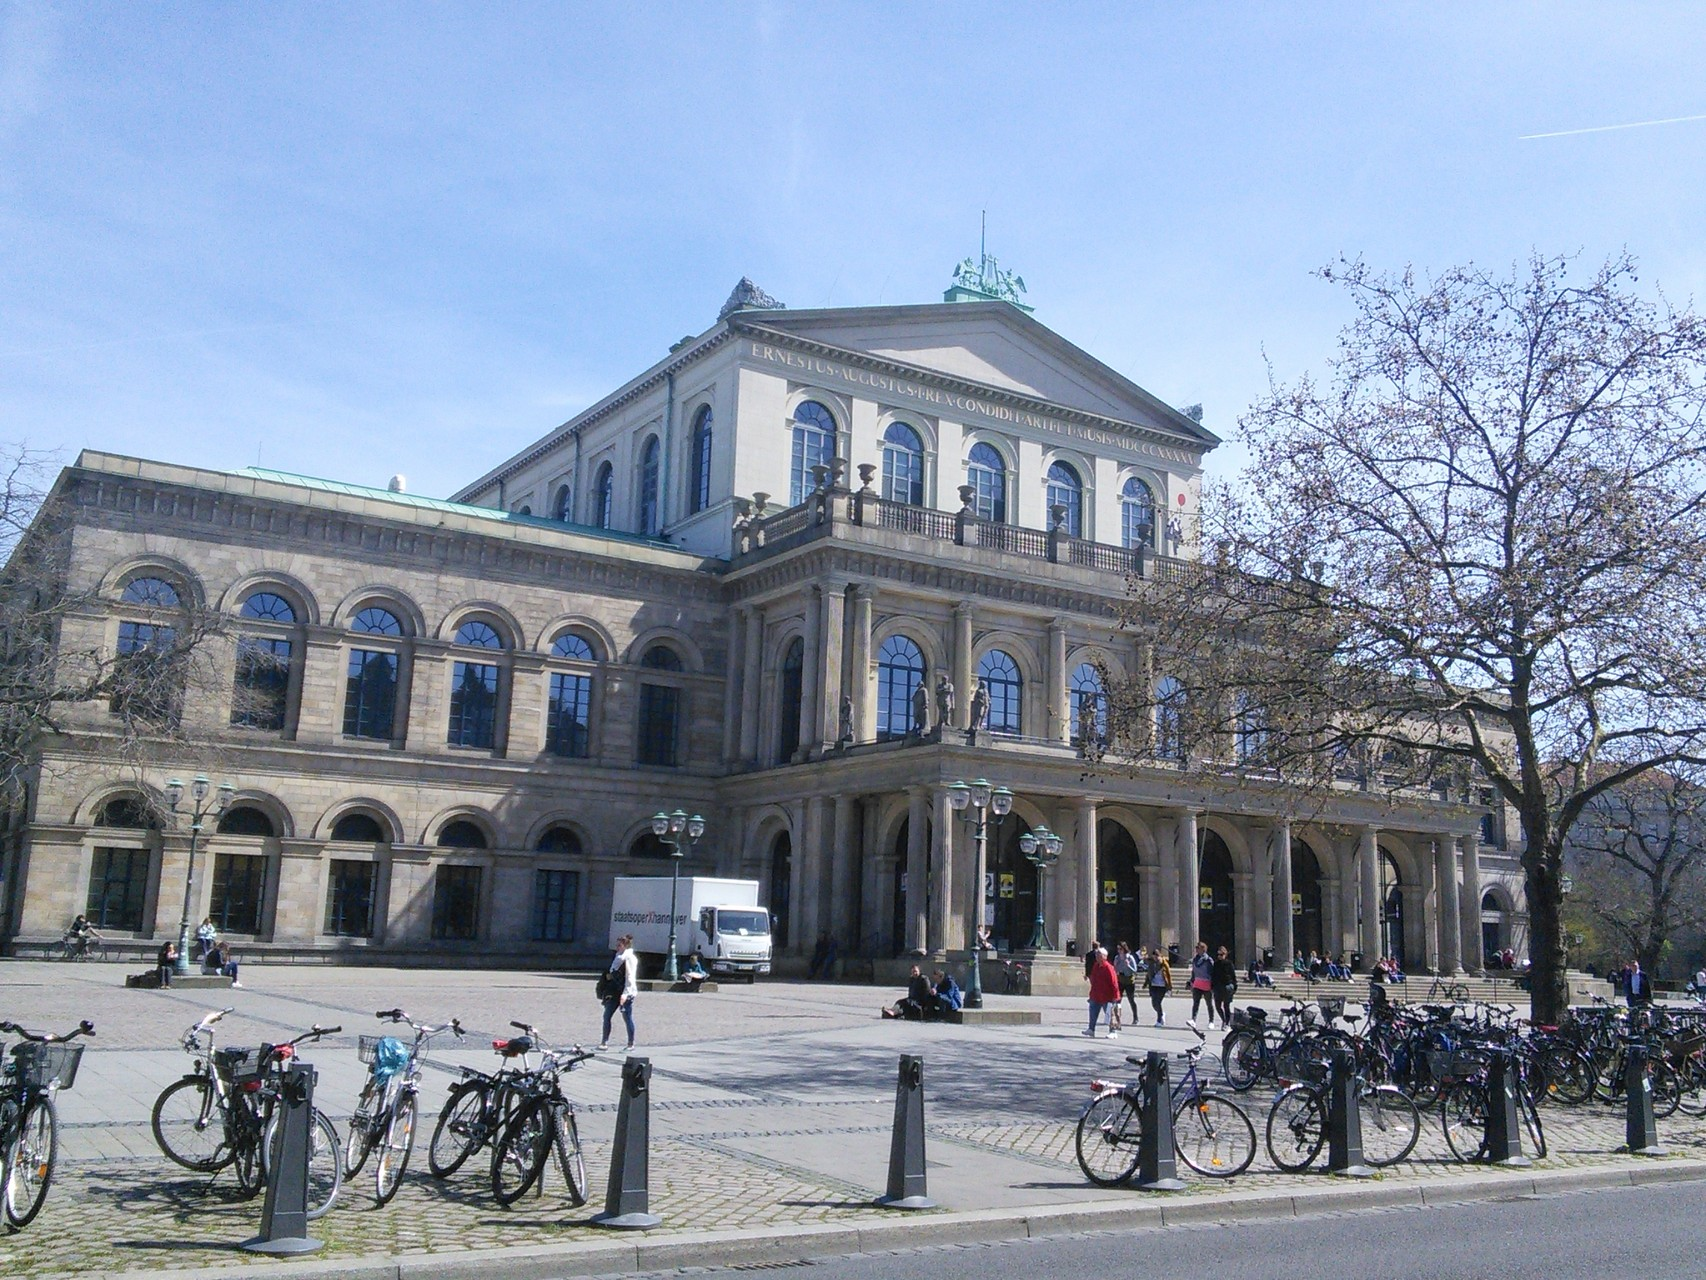 Oper Hannover Frontansicht 1